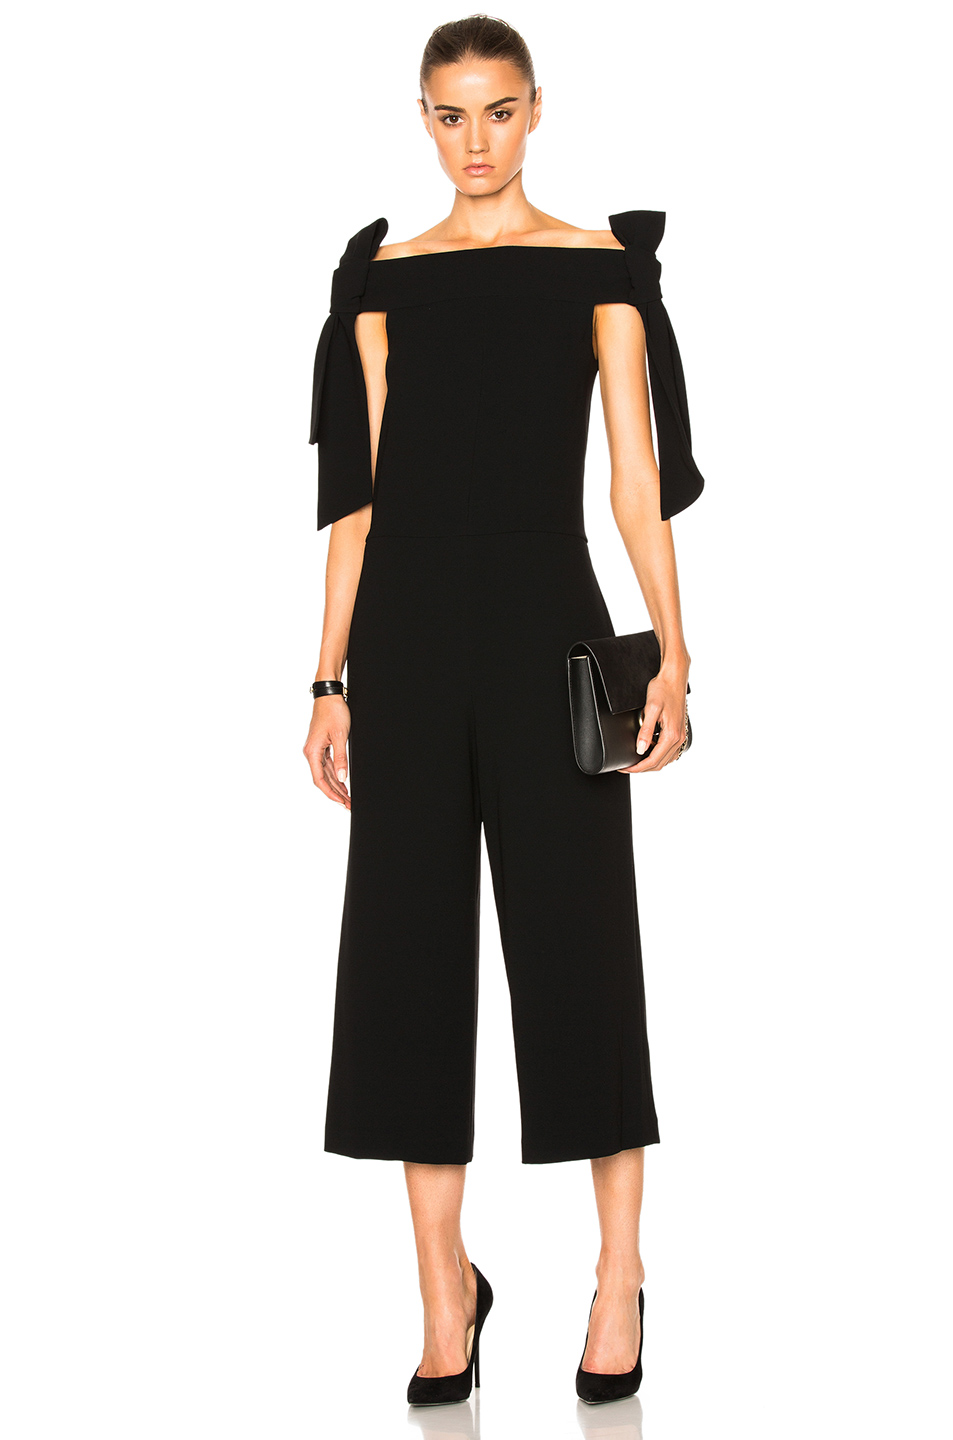 Tibi Tie Shoulder Jumpsuit in Black